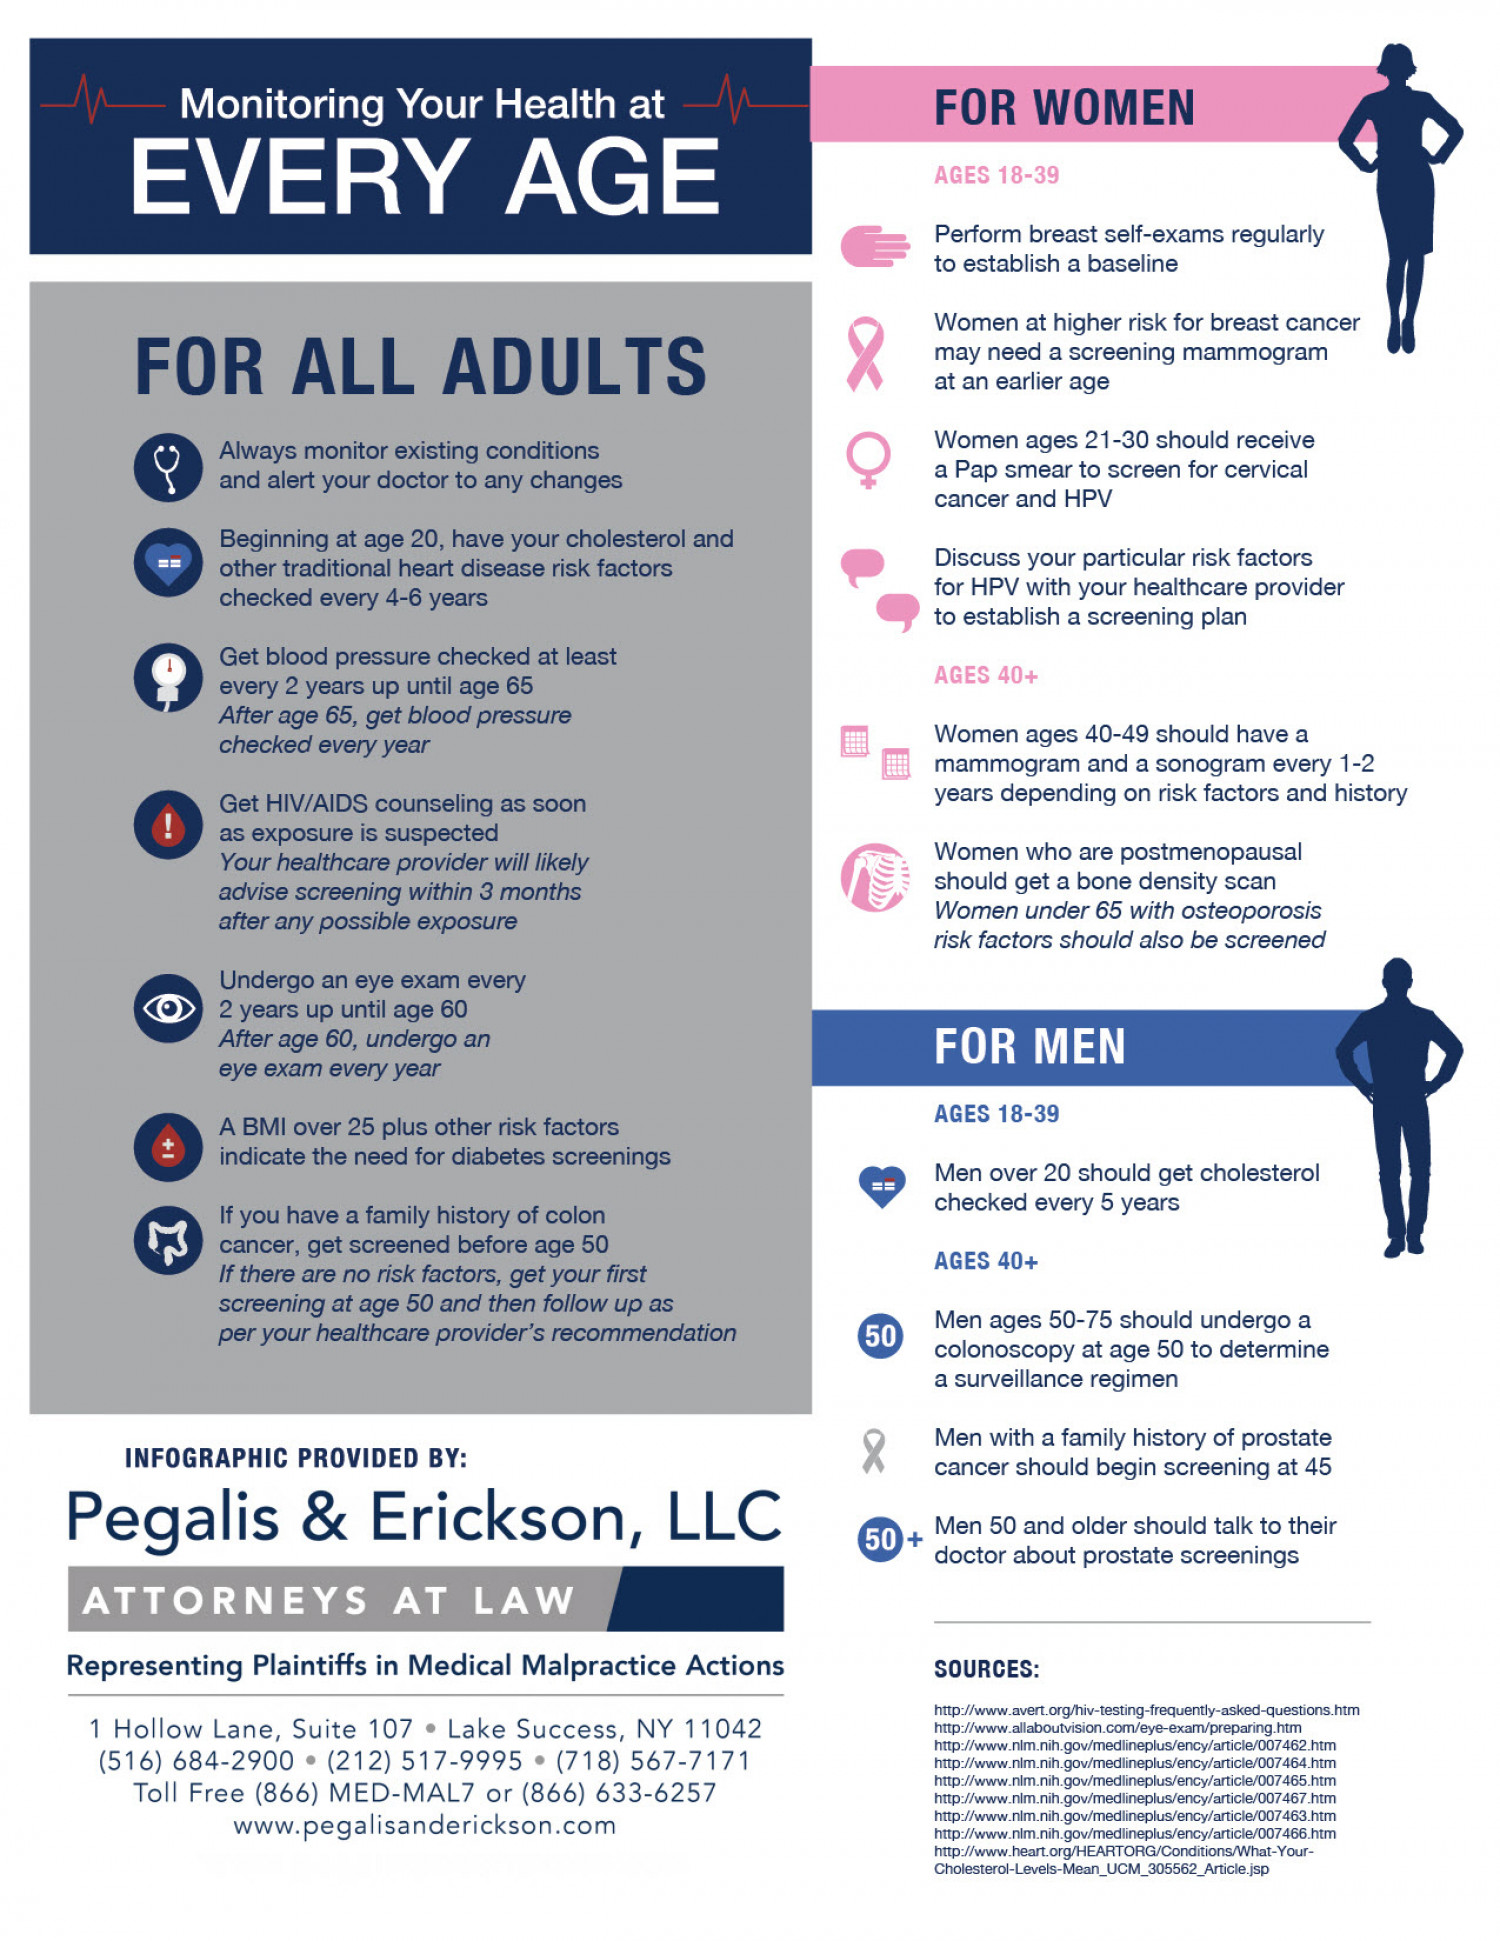 MONITORING YOUR HEALTH AT EVERY AGE  Infographic